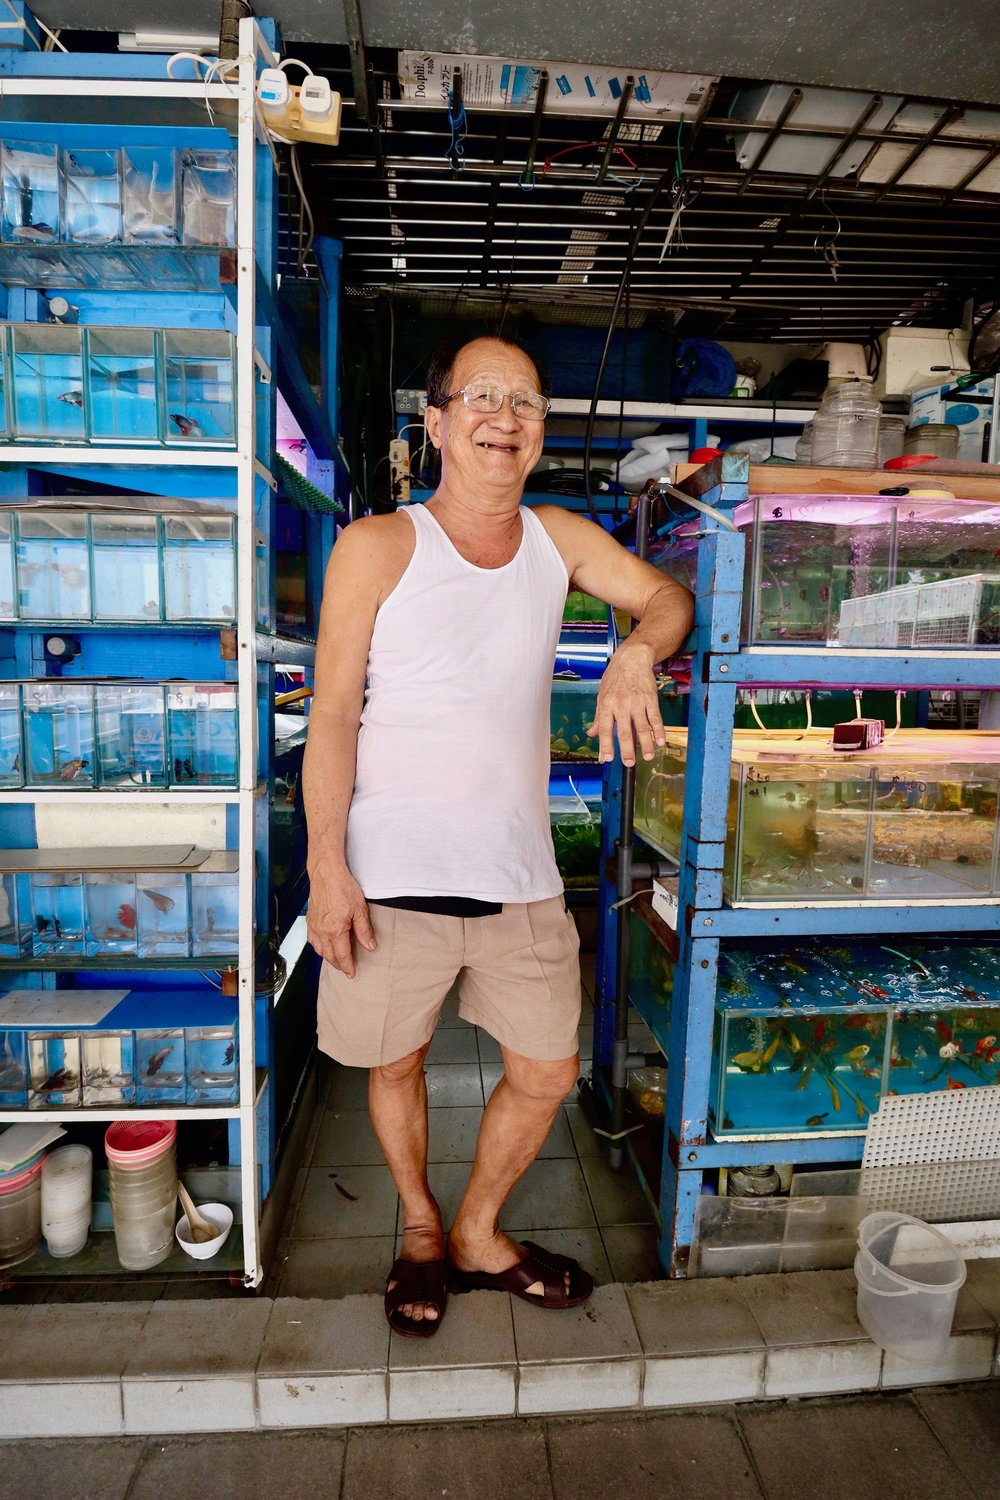 MELODEE TAN  Uncle Heng has been running his pet fish business for 36 years, ever since his wife started it in 1982. He took over the shop more than a decade ago after she passed away, and is continuing to keep her dream alive today. I have been buying my pet fishes from him for a few years now, but I am aware of the declining interest in rearing pet fishes amongst young people nowadays. Instead, they go for exotic aquatic animals that cannot be found in the common neighbourhood pet fish shop. Despite the decline in business, Uncle Heng is still there with his fishes as he always has been, and his constant presence in my life as a Tampines resident is reassuring.